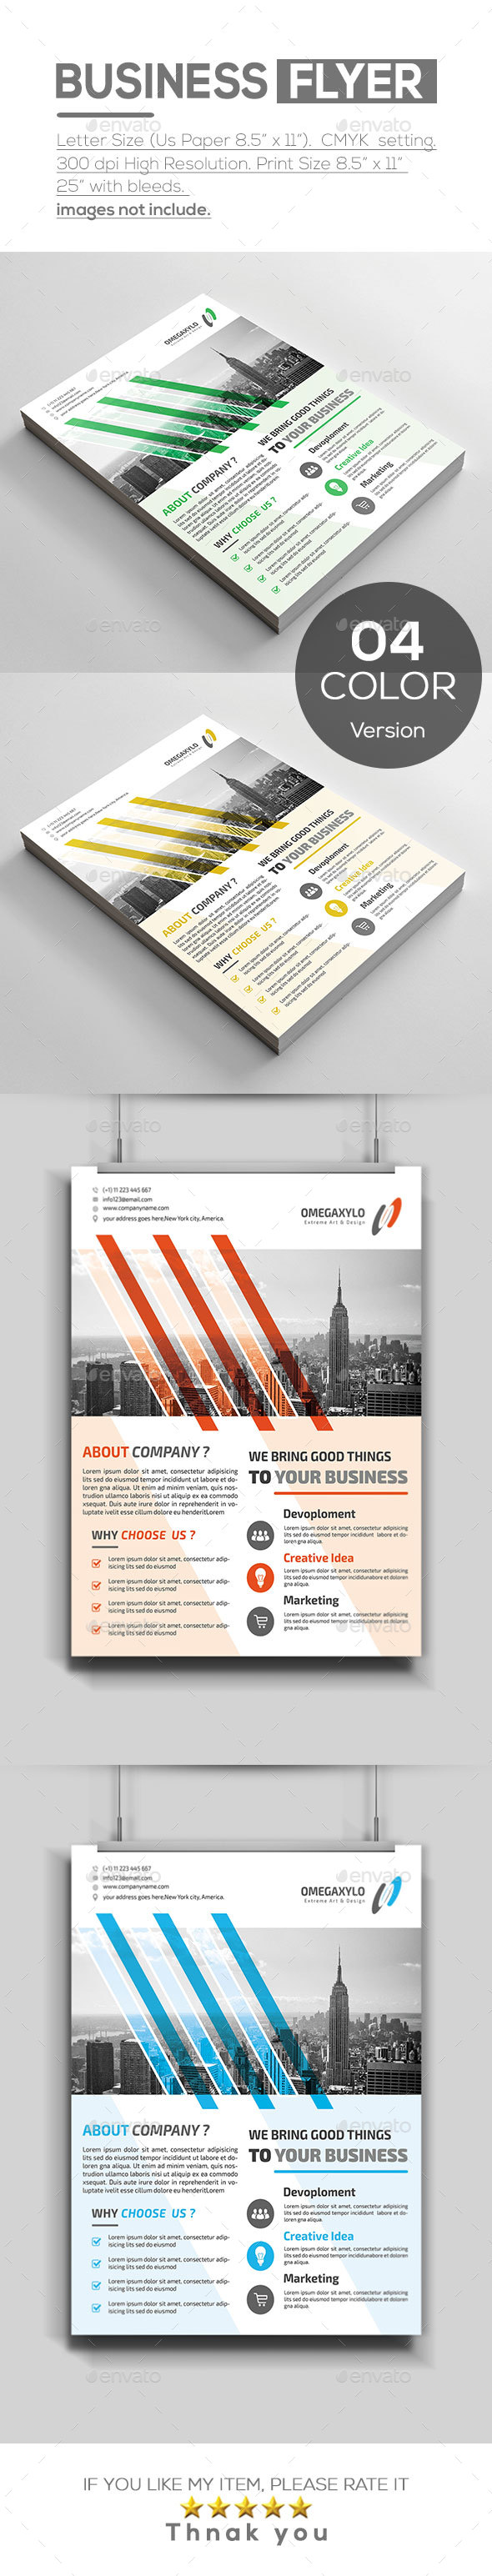 Busien Flyer - Corporate Flyers